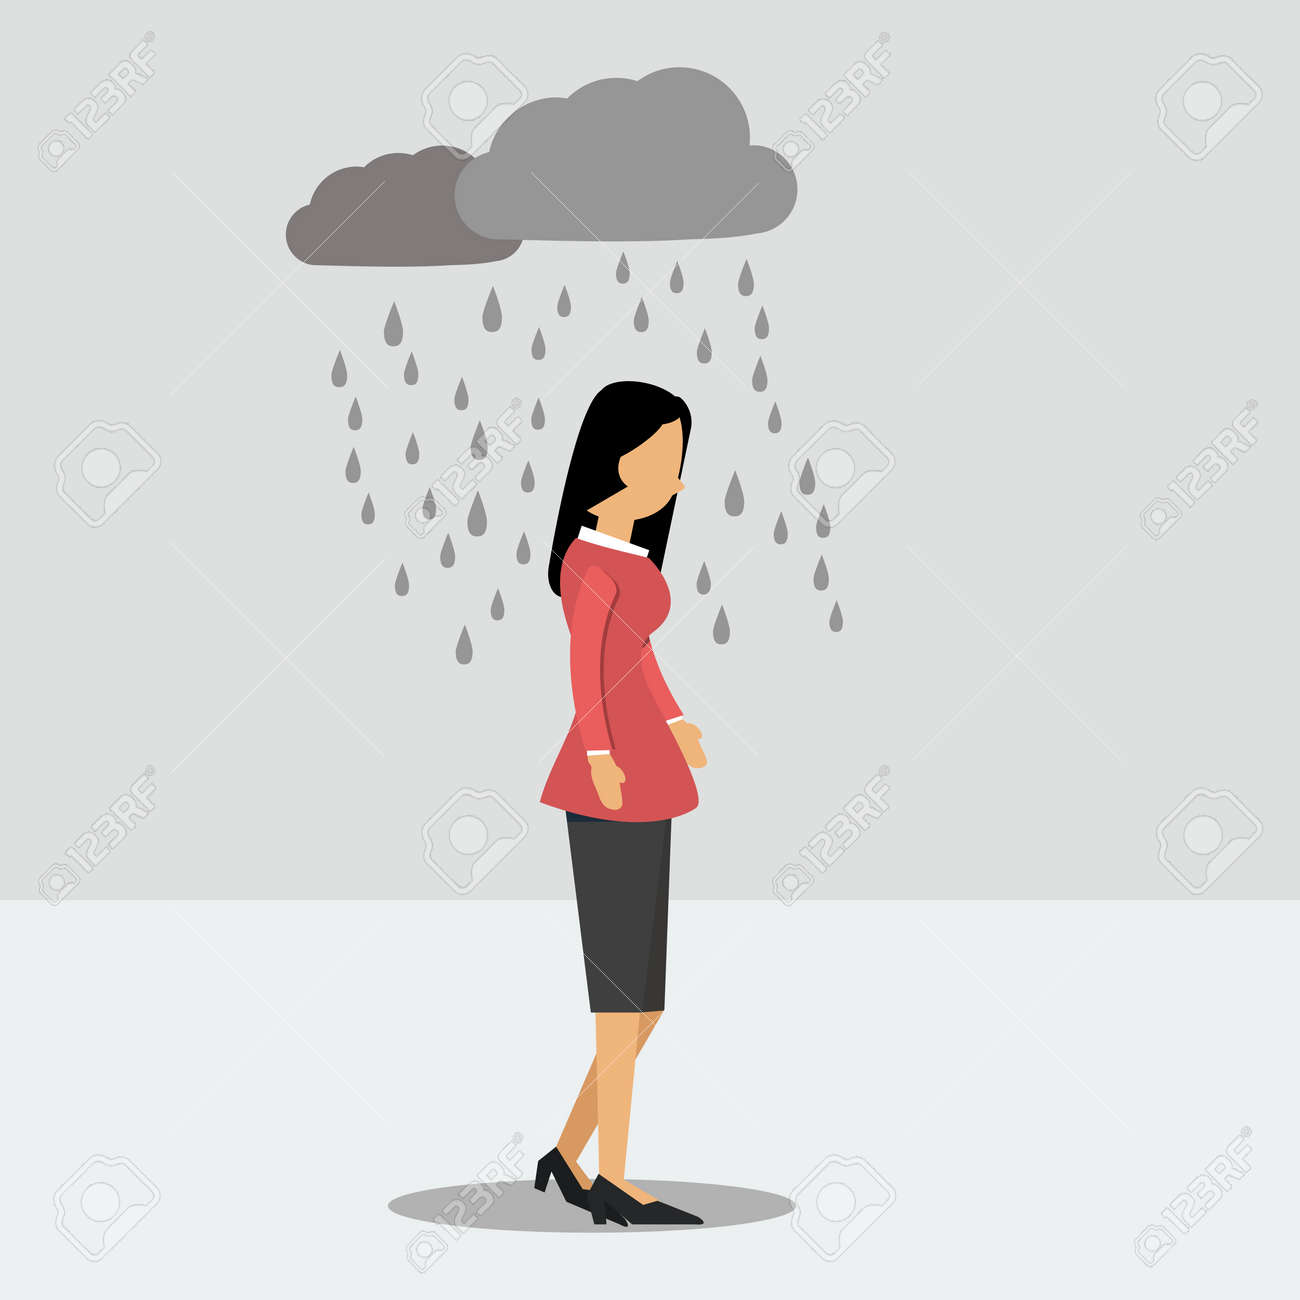 Vector illustration. Walking woman in depression in the rain - 47541701